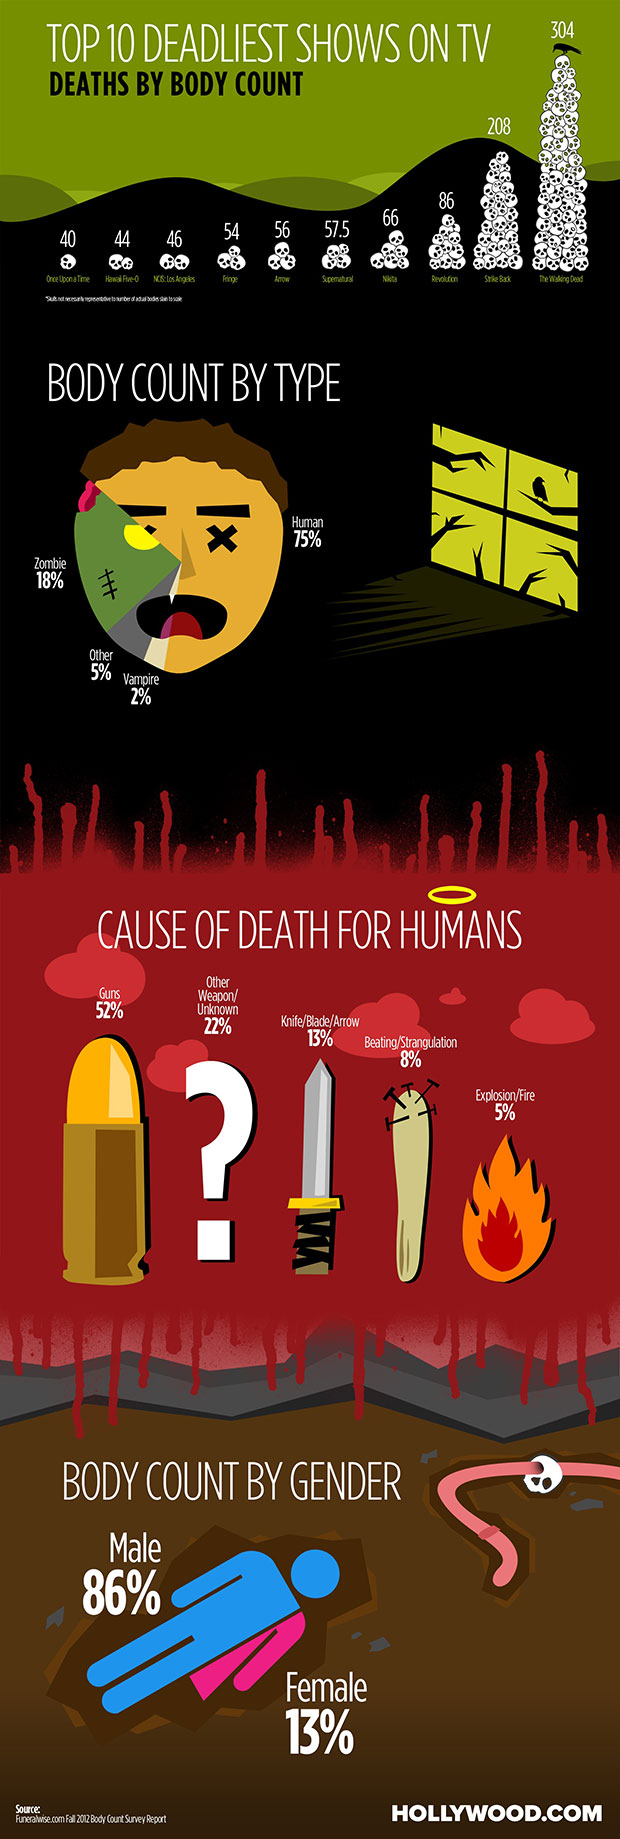 TV Deaths Infographic